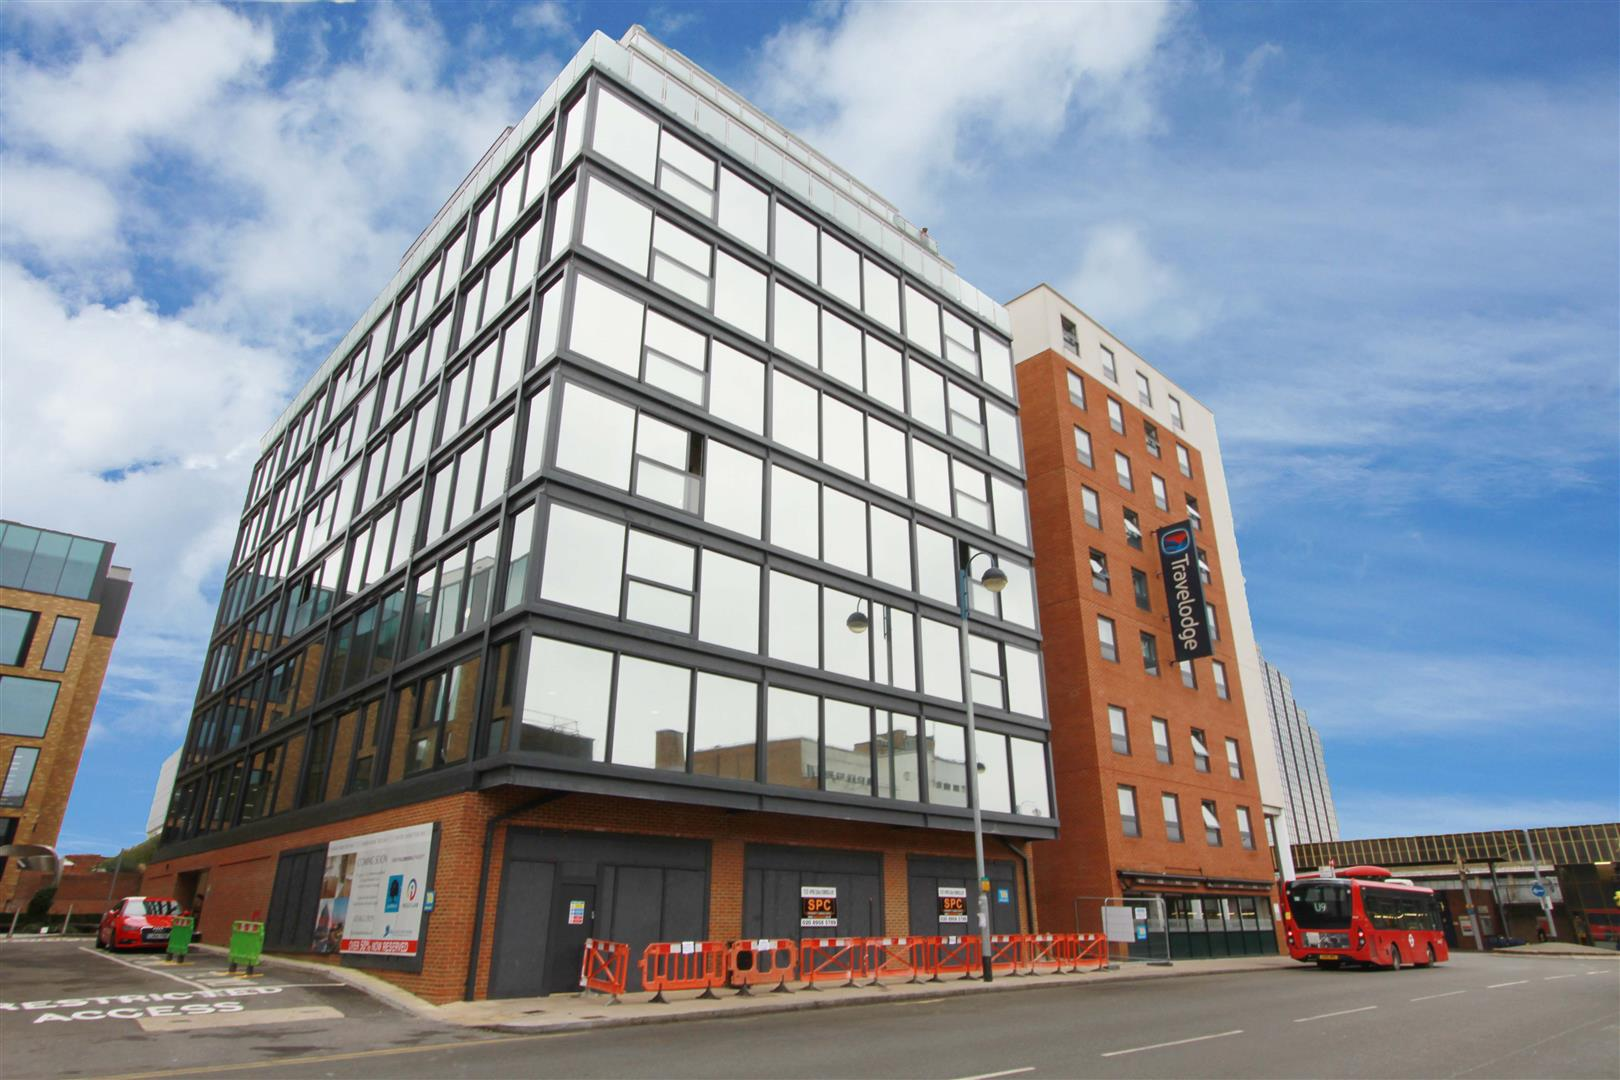 Coopers Residential The West London Property Specialists